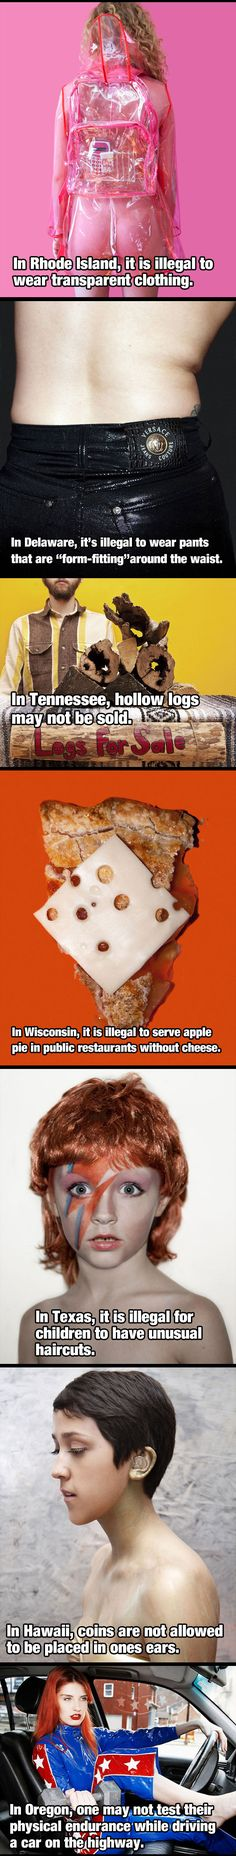 I don't want apple pie in Wisconsin. And I don't think the hair thing is illegal. Kids can't have weird hair at school. At least most of the schools I know.